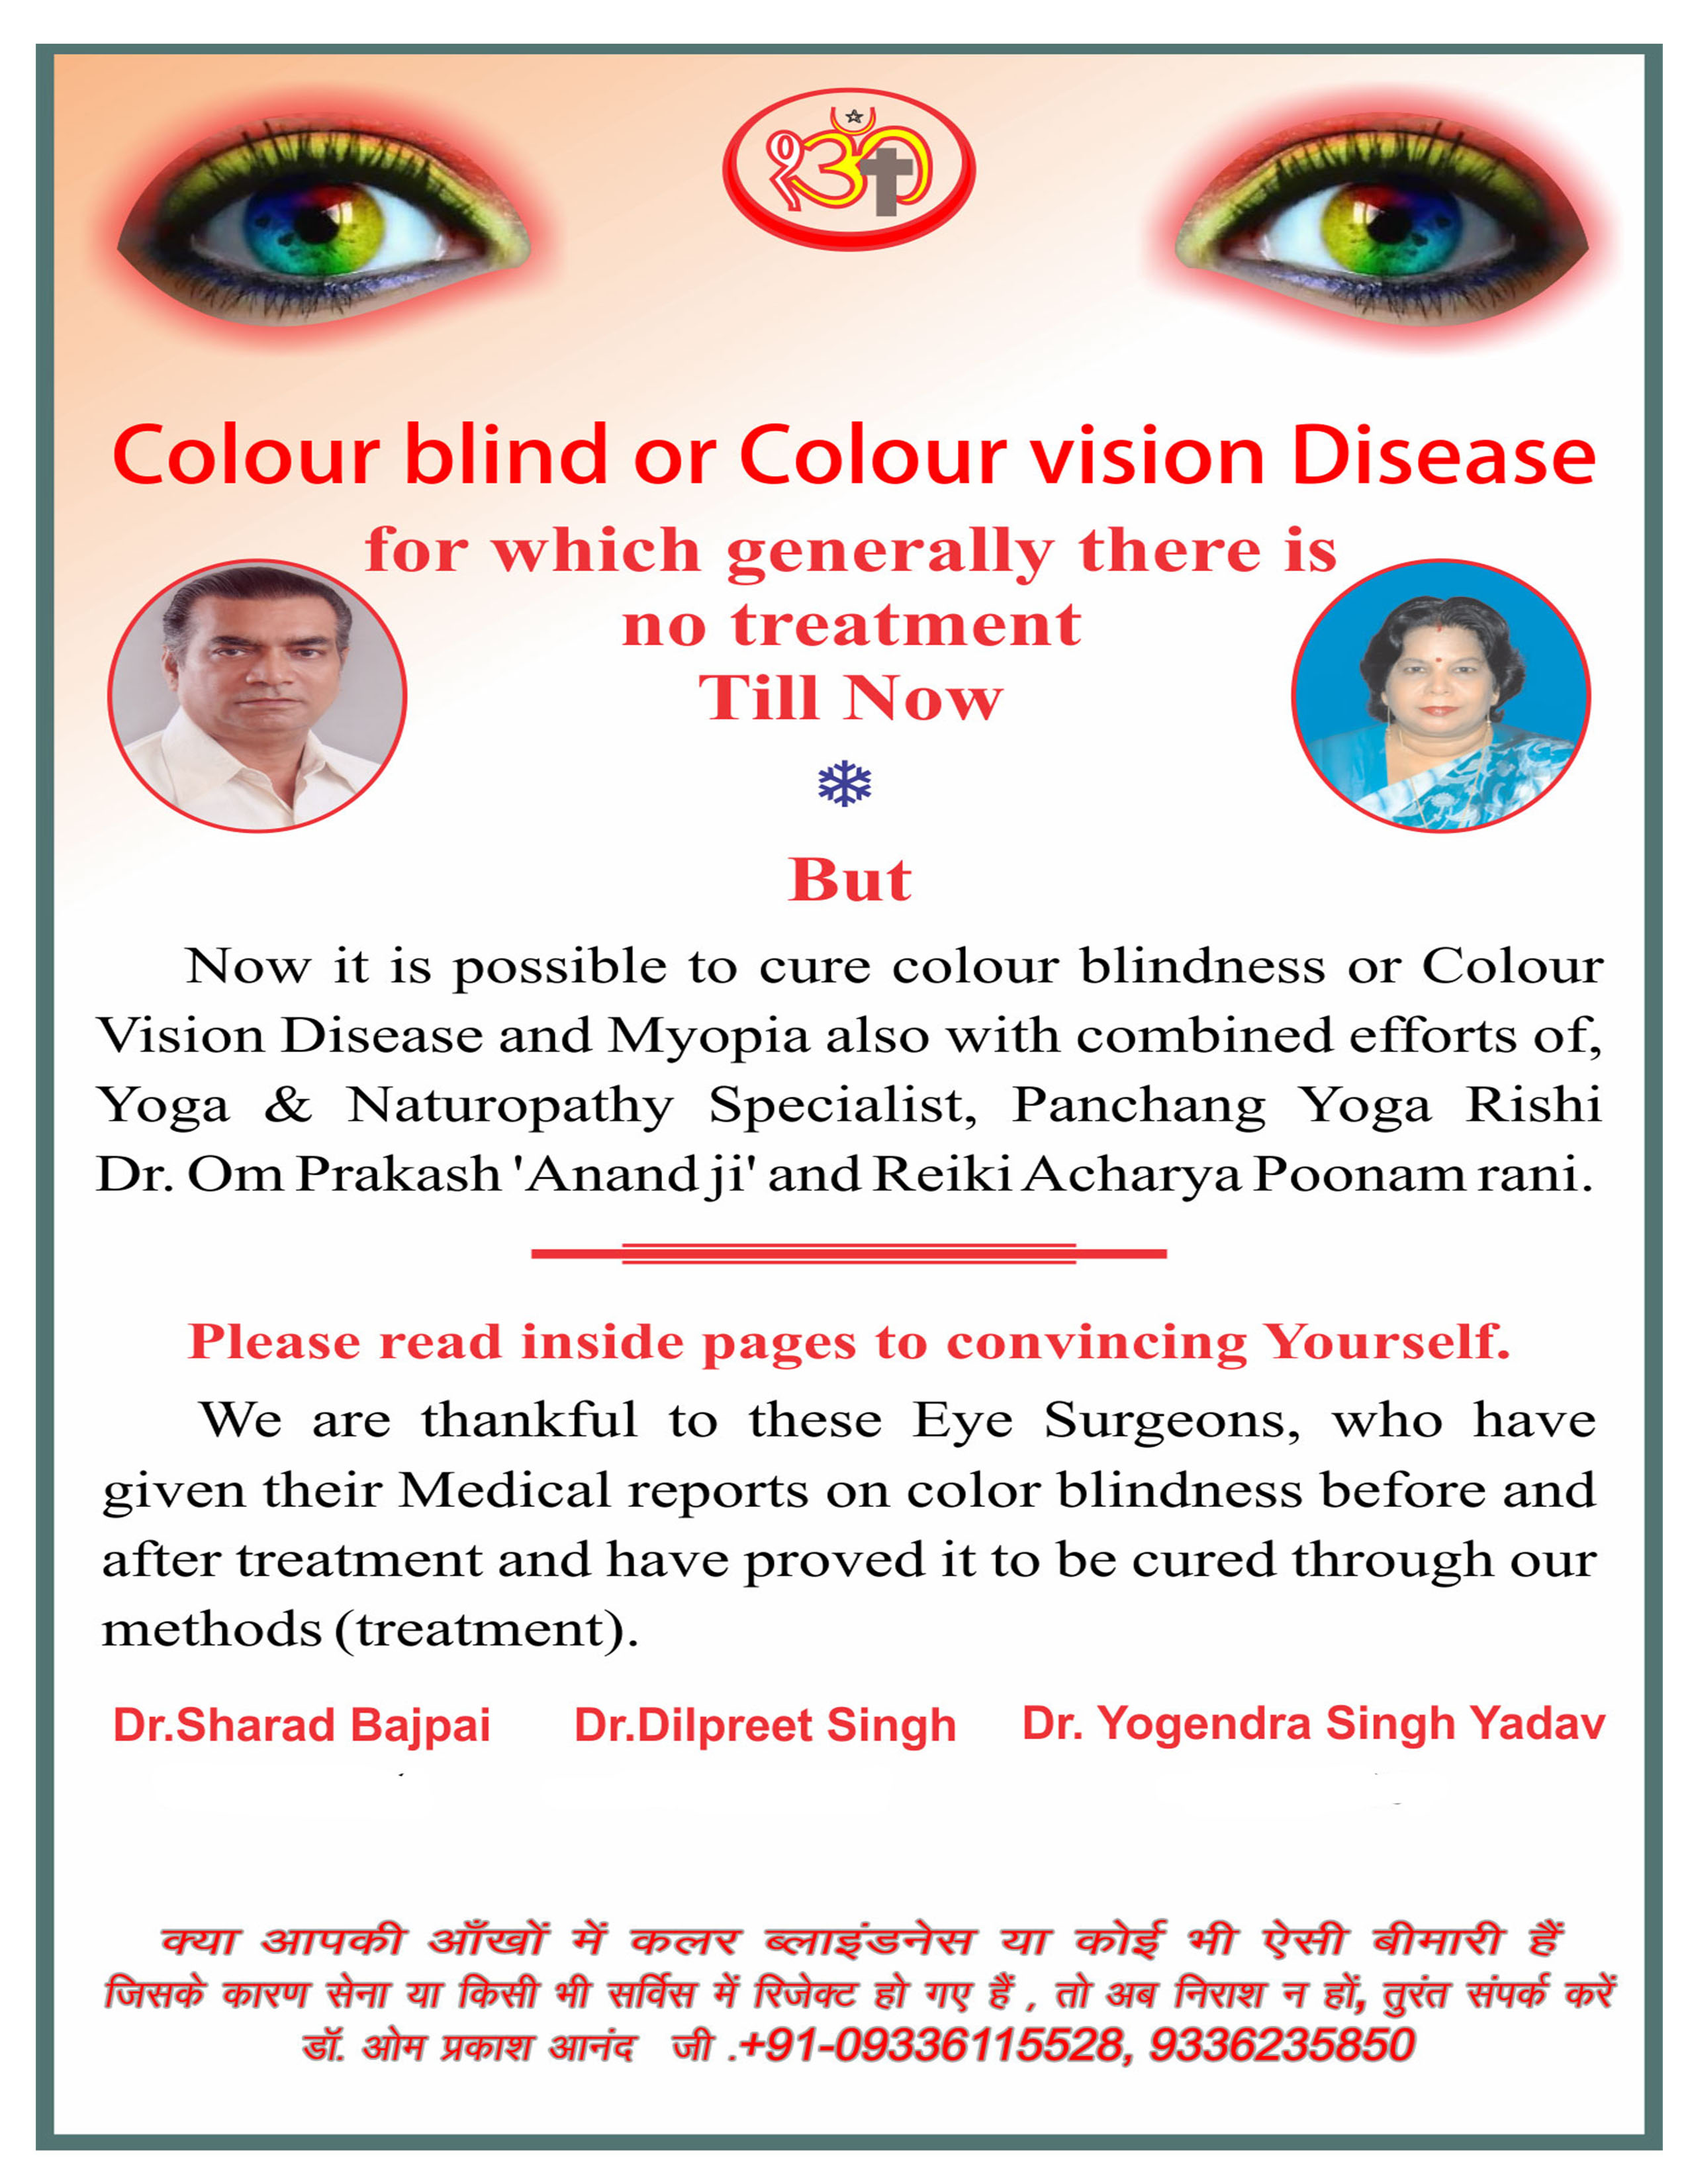 Book for color blindness - How Came The Thought Of Treatment Colourblindness Or Colour Vision In My Mind